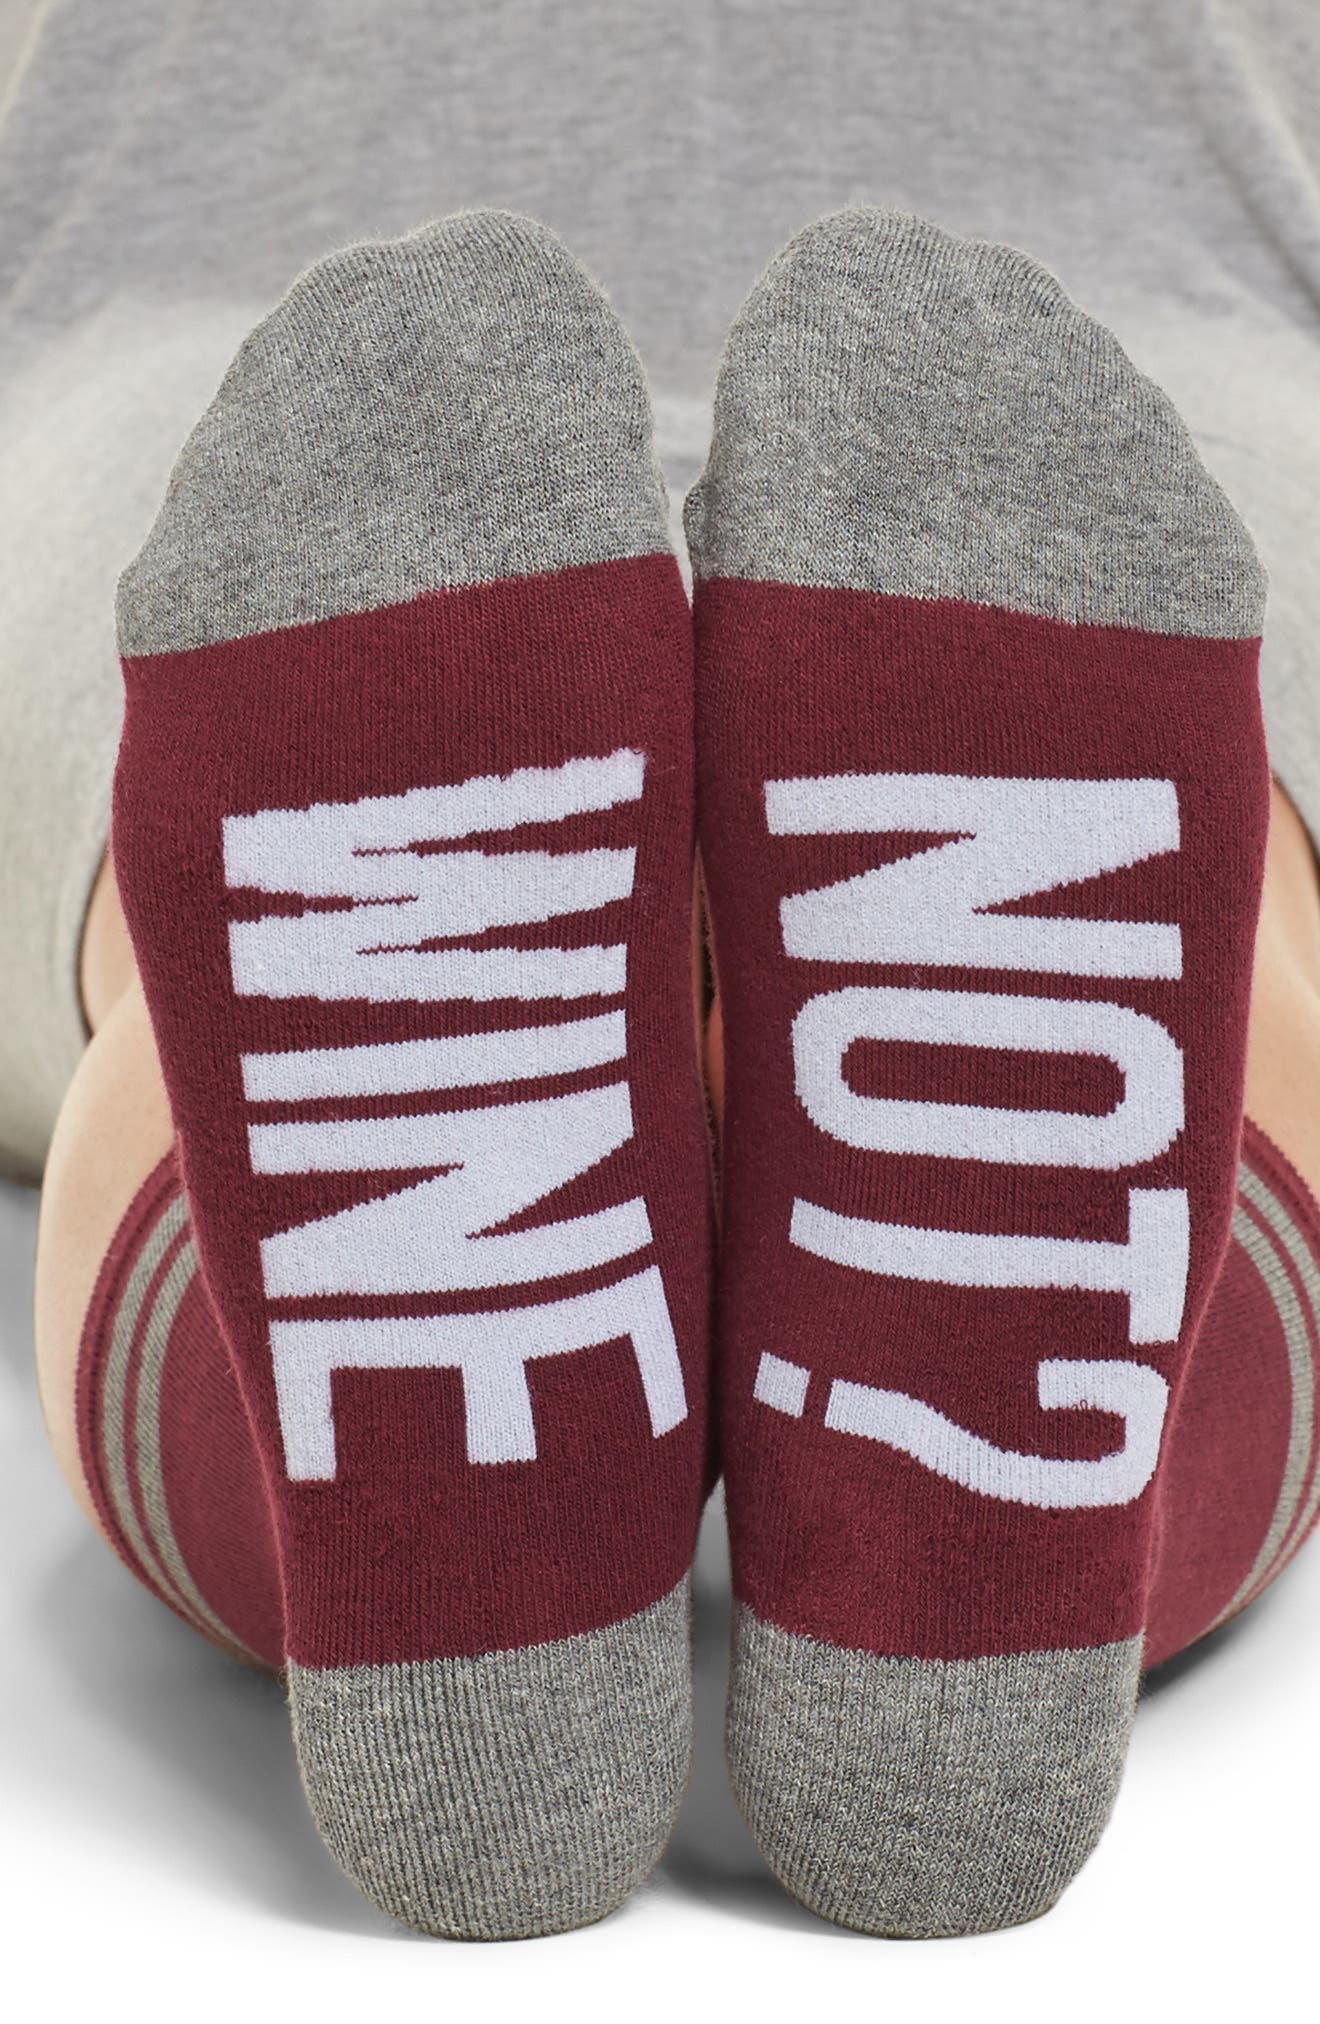 SOCKART Wine Not? Crew Socks